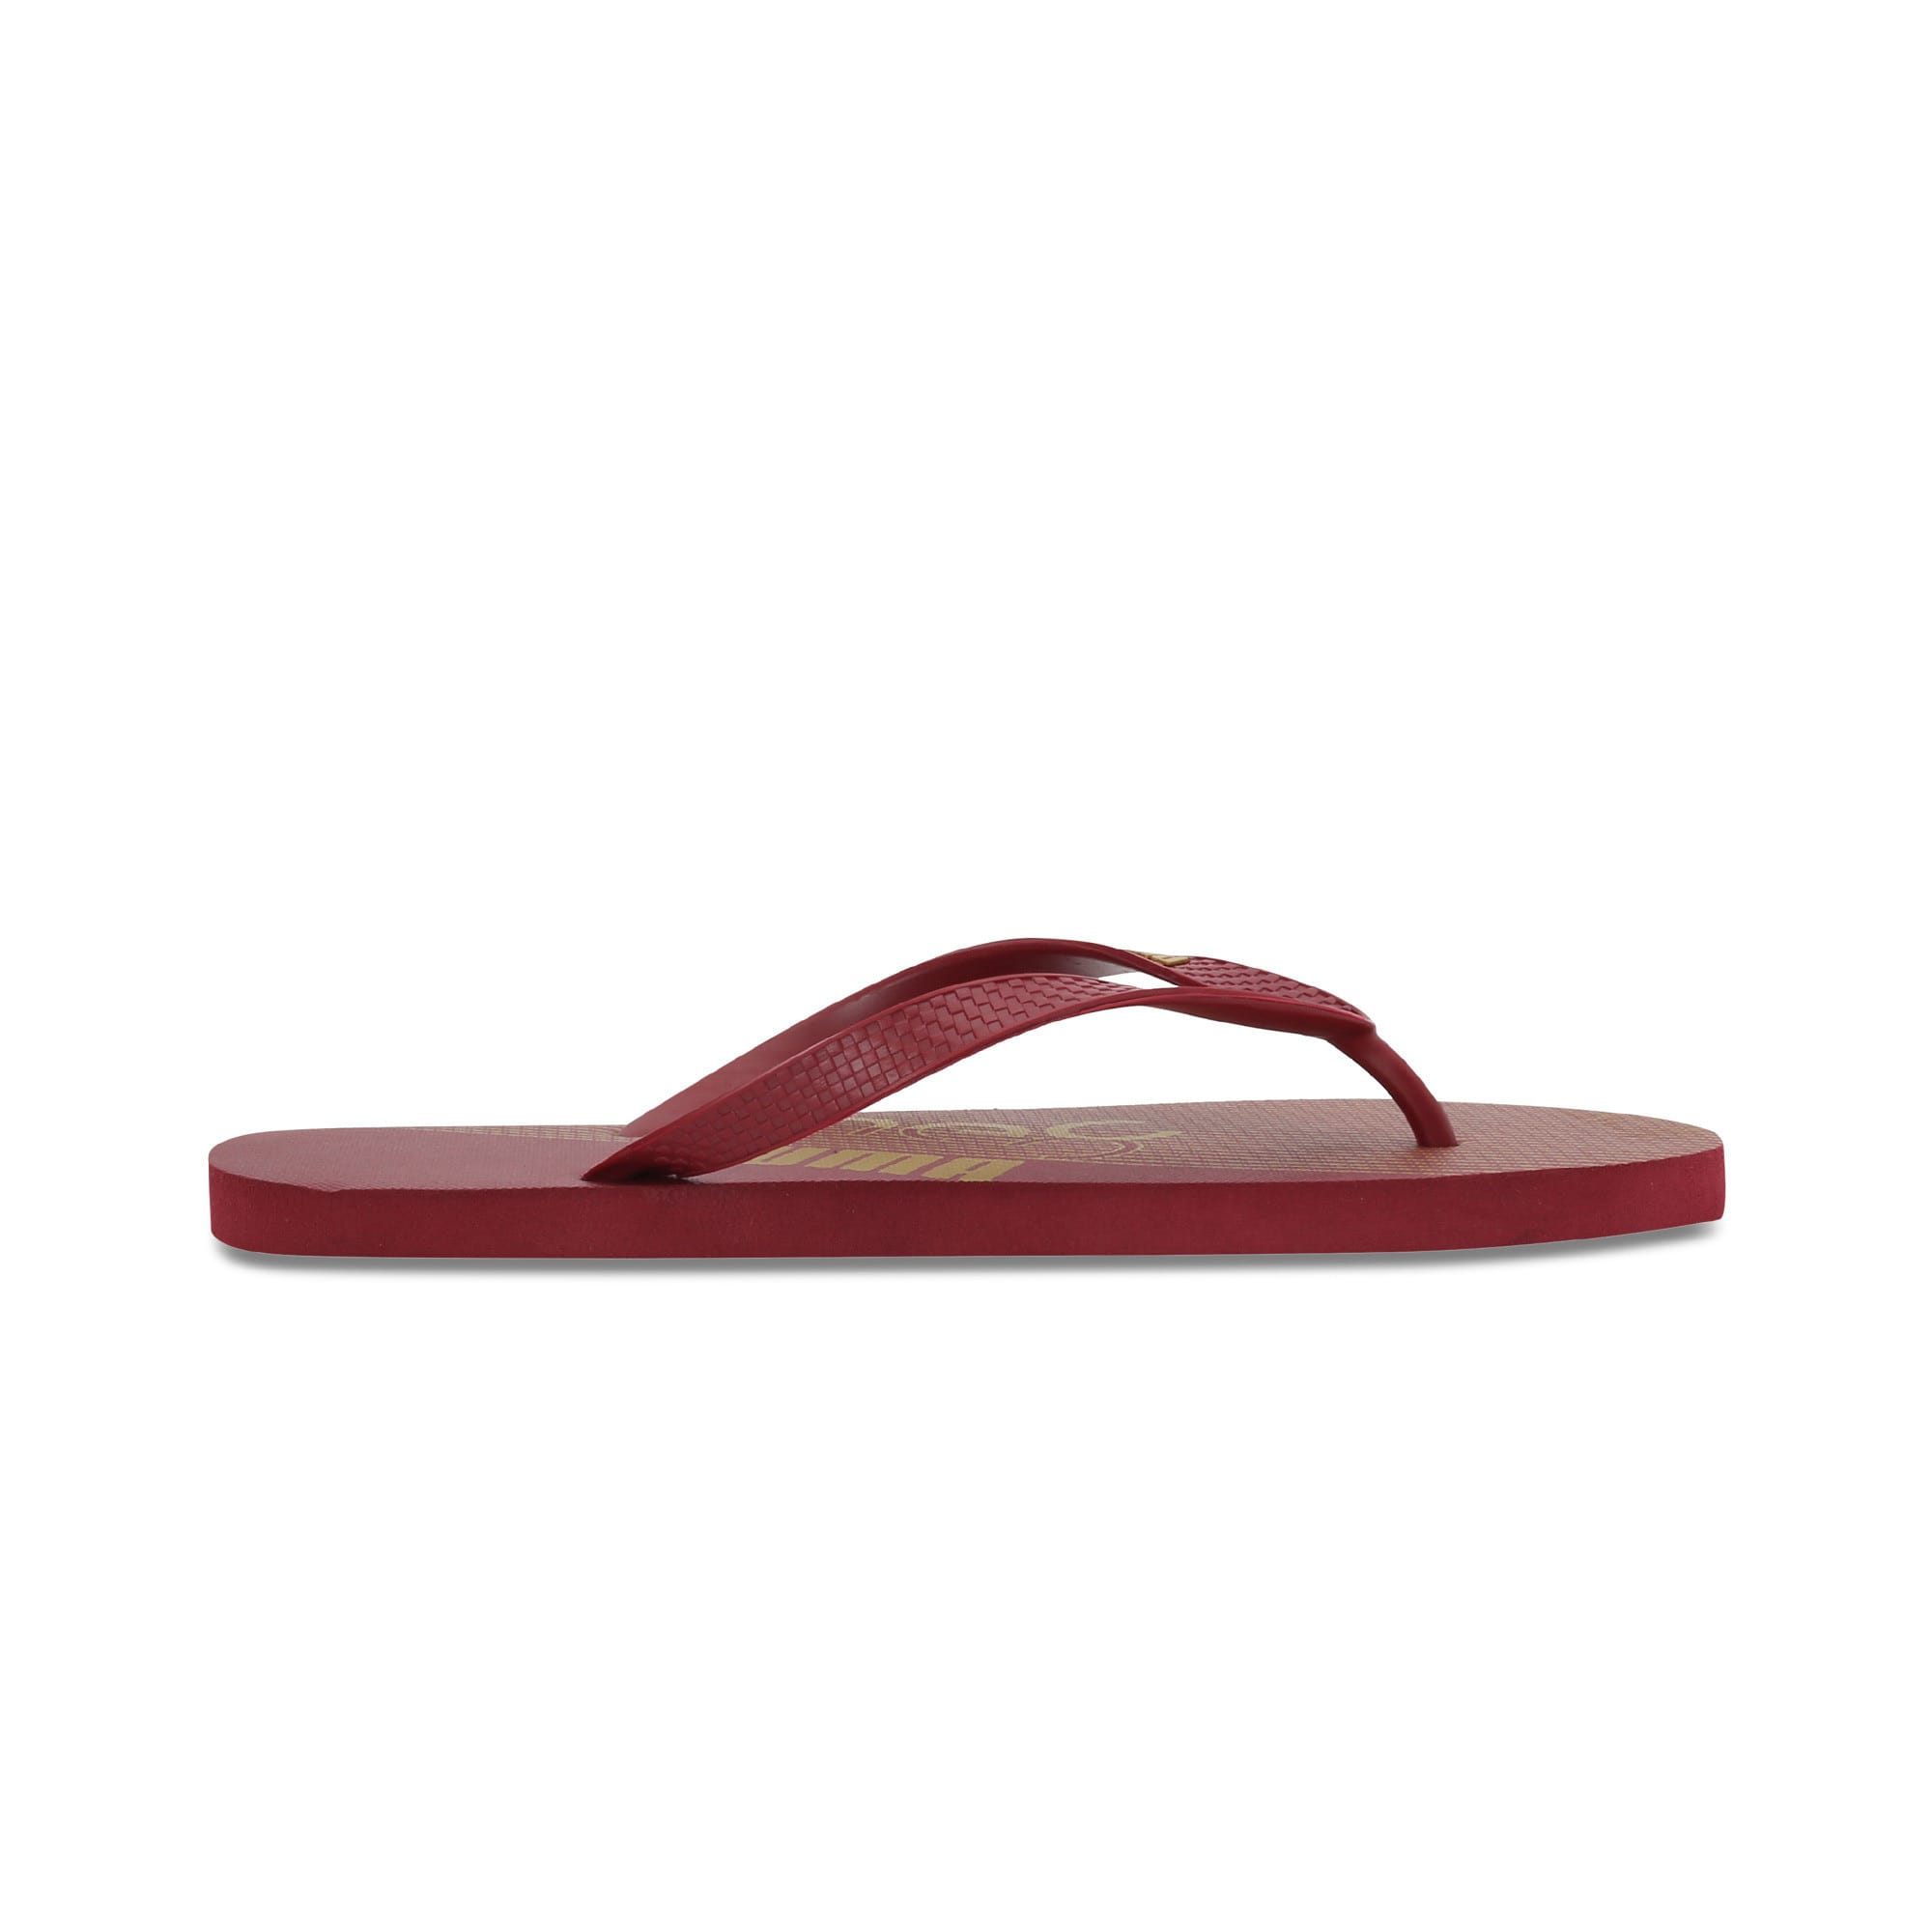 Thumbnail 5 of one8 FF IDP Unisex Flip Flops, Rhubarb-Puma Team Gold, medium-IND